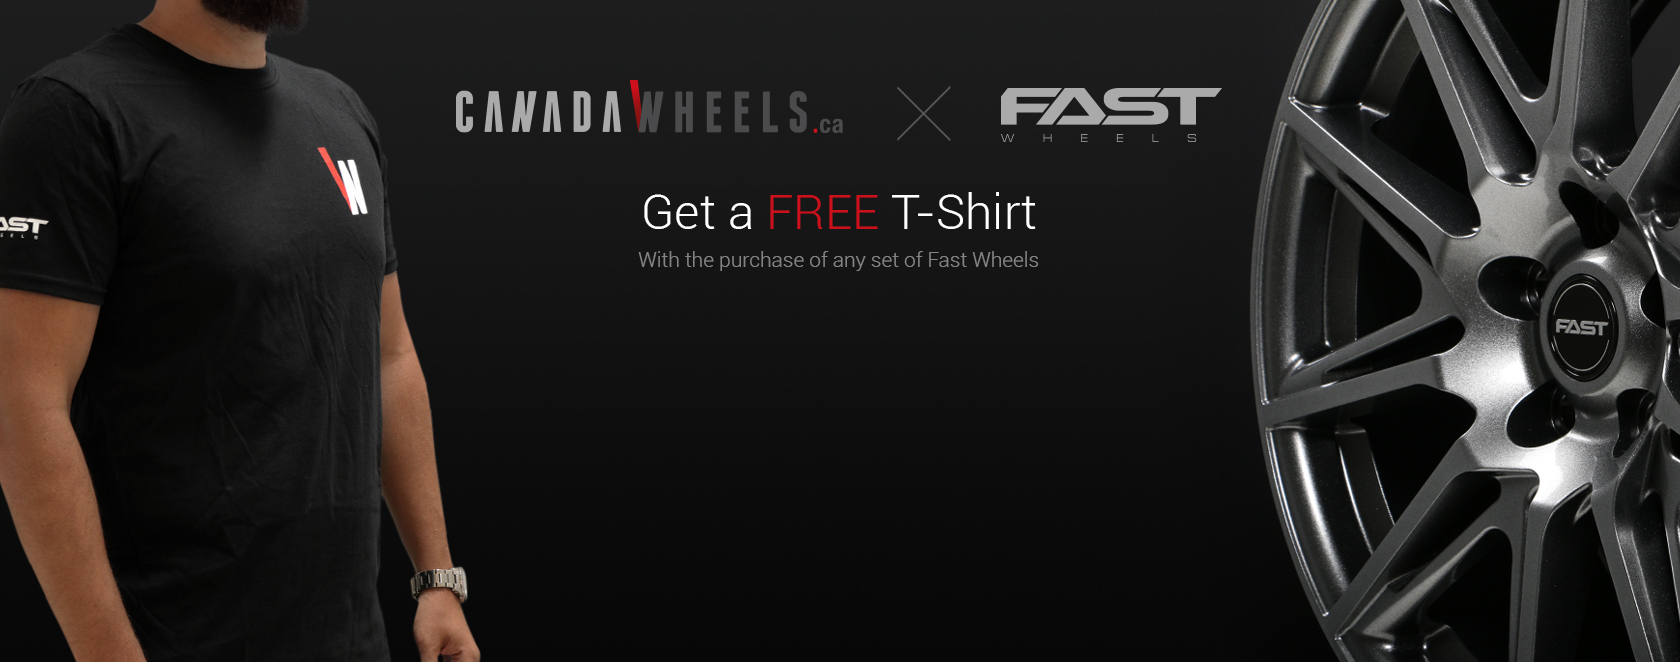 https://www.canadawheels.ca/canadawheels-fastwheels-t-shirt.html